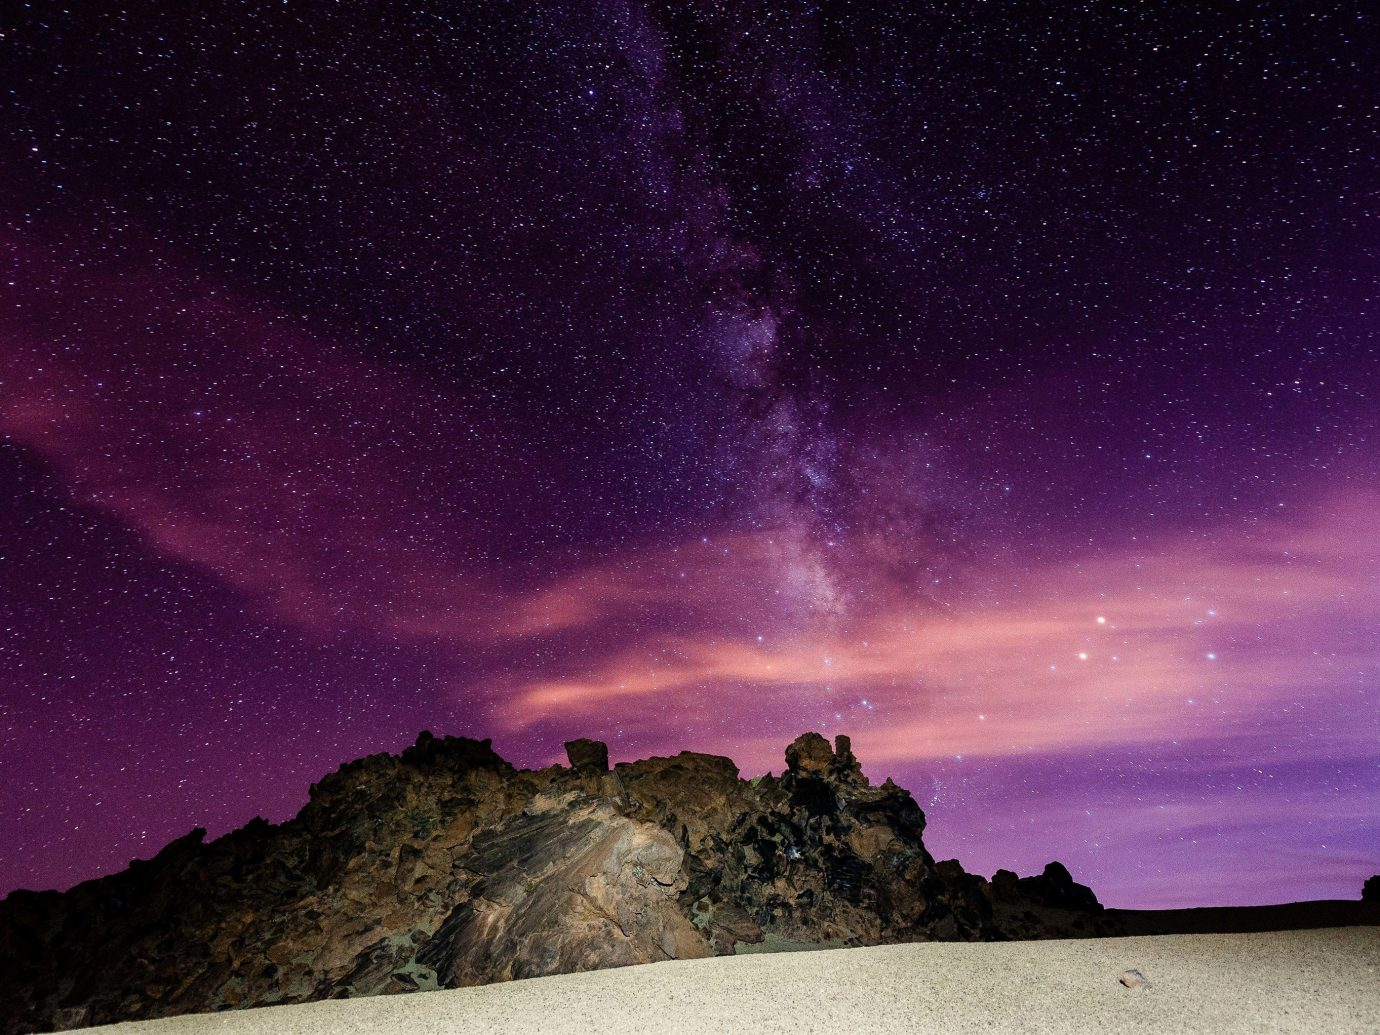 Trip Ideas sky Nature atmosphere purple mountain night geological phenomenon astronomical object phenomenon star outer space Night Sky galaxy landscape horizon milky way astronomy darkness space midnight meteorological phenomenon cloud dawn